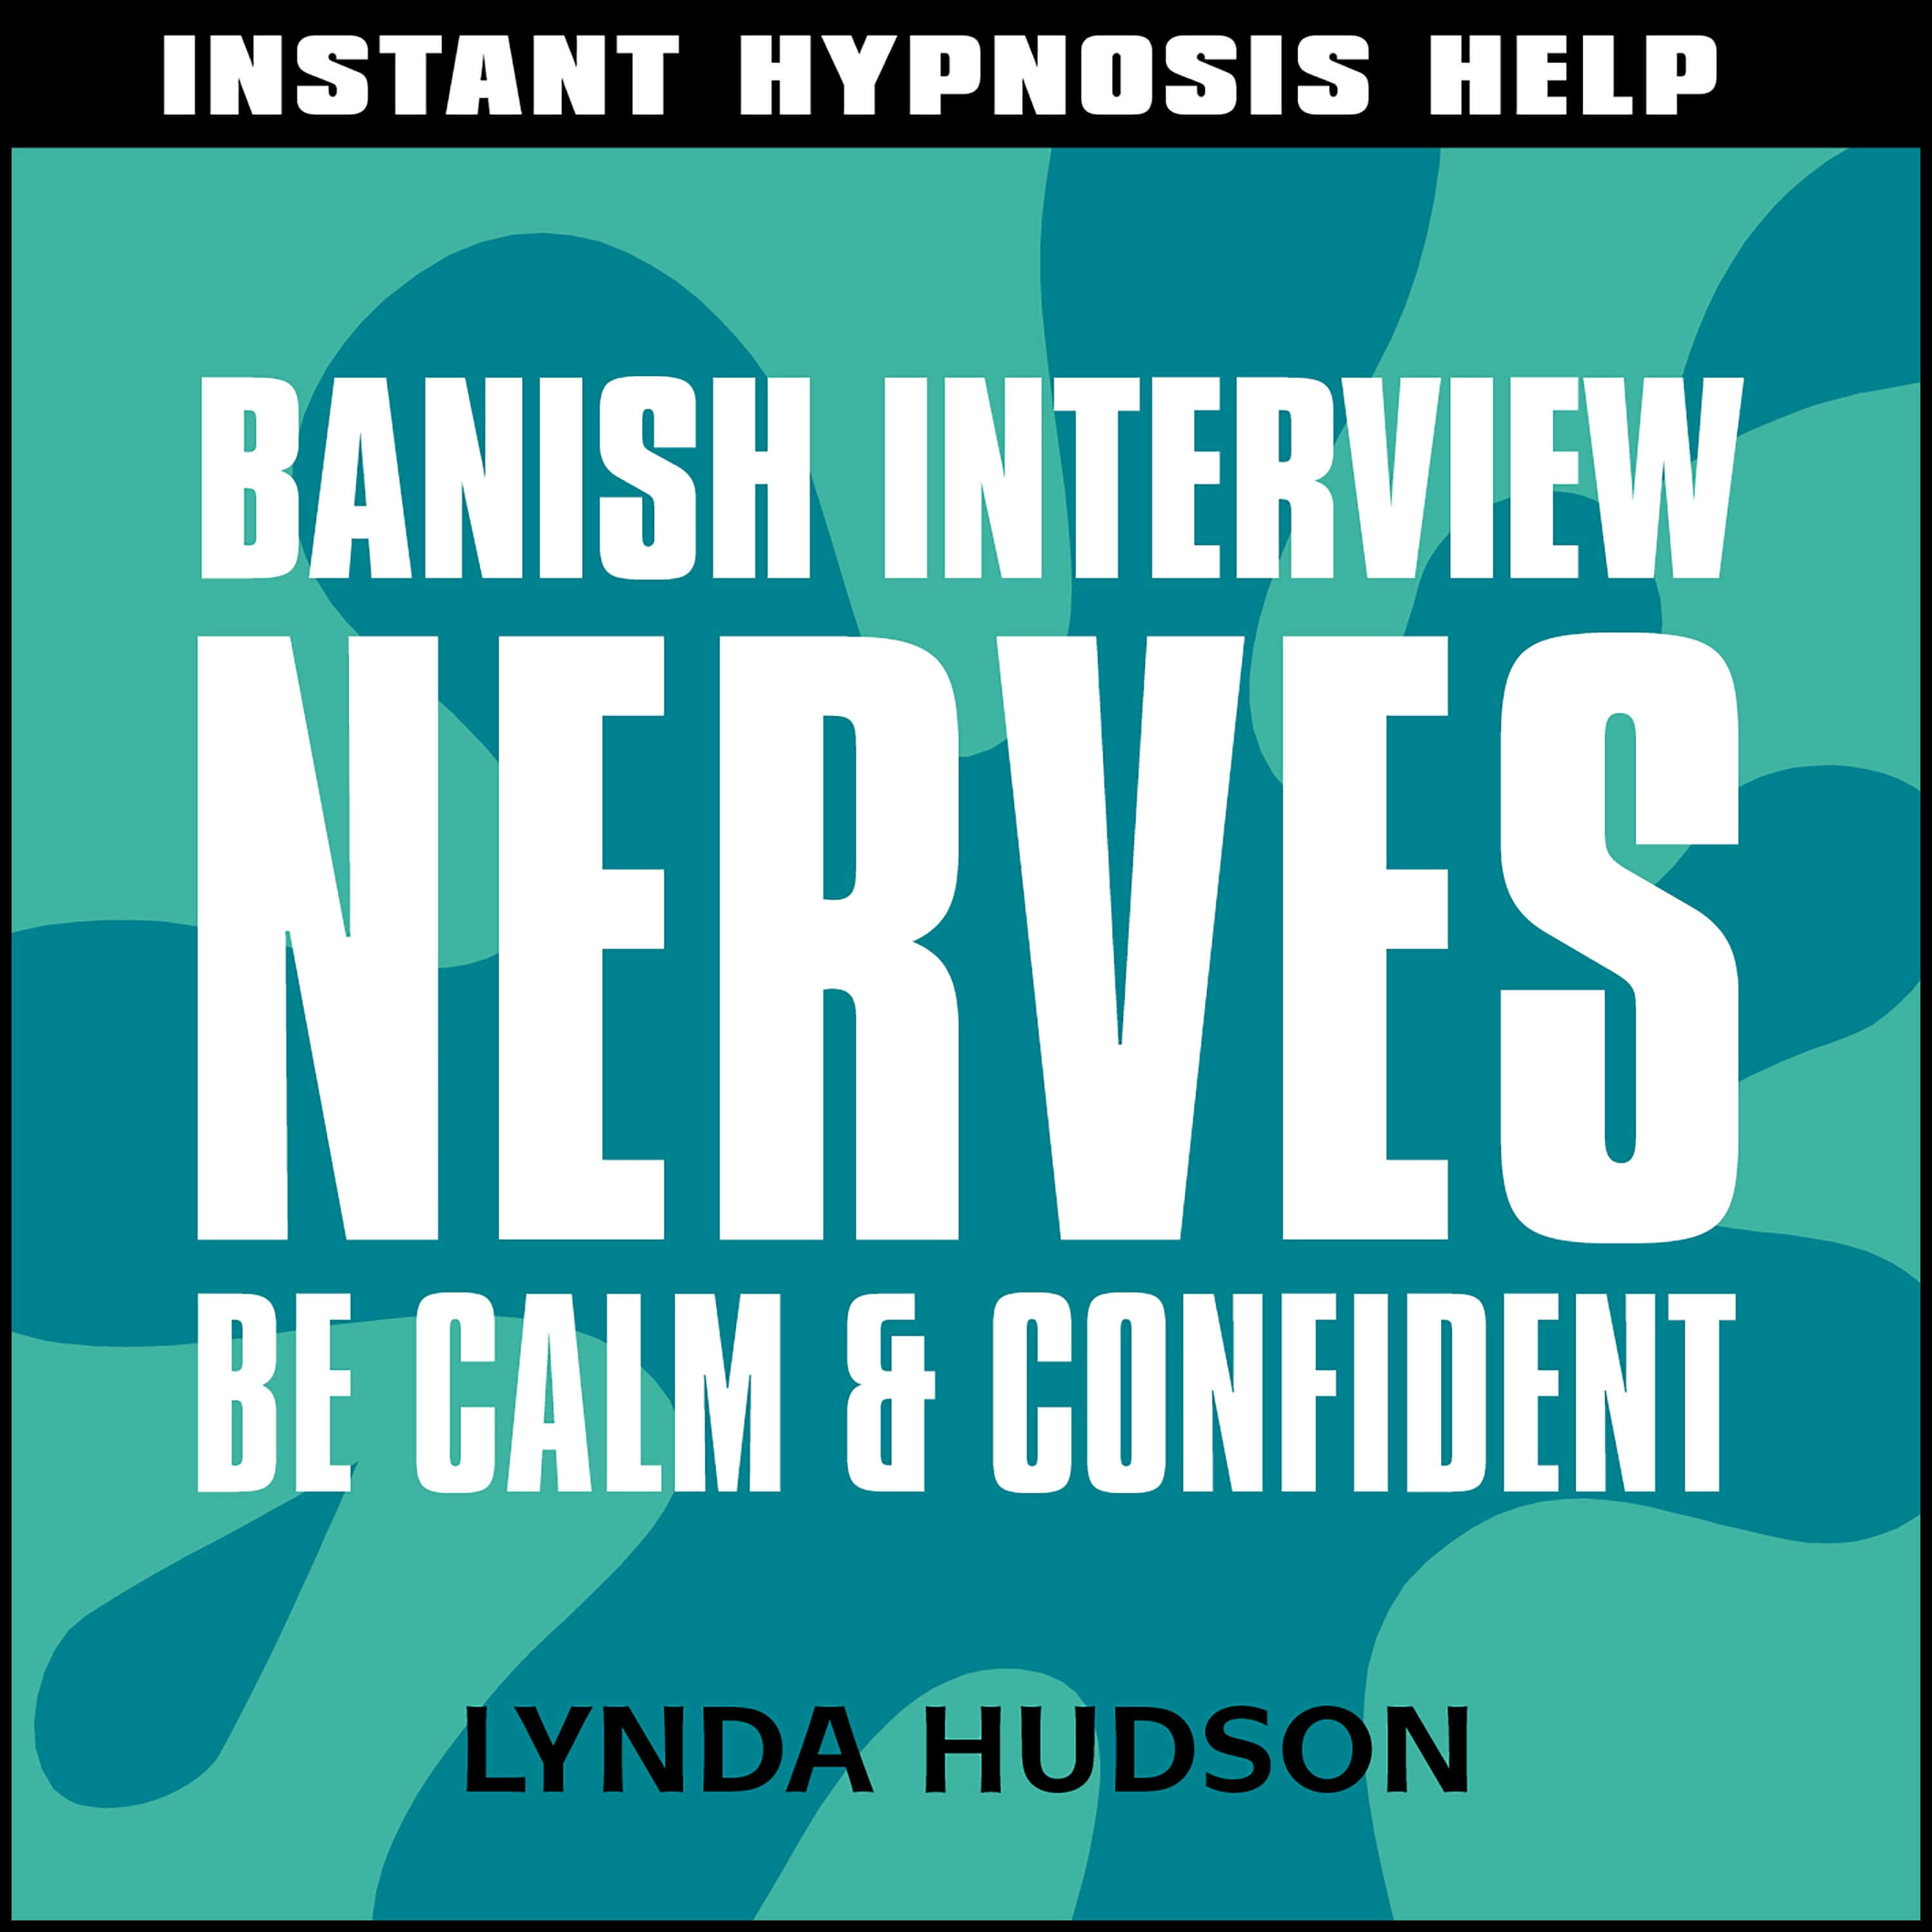 Banish Interview Nerves Be calm and confident